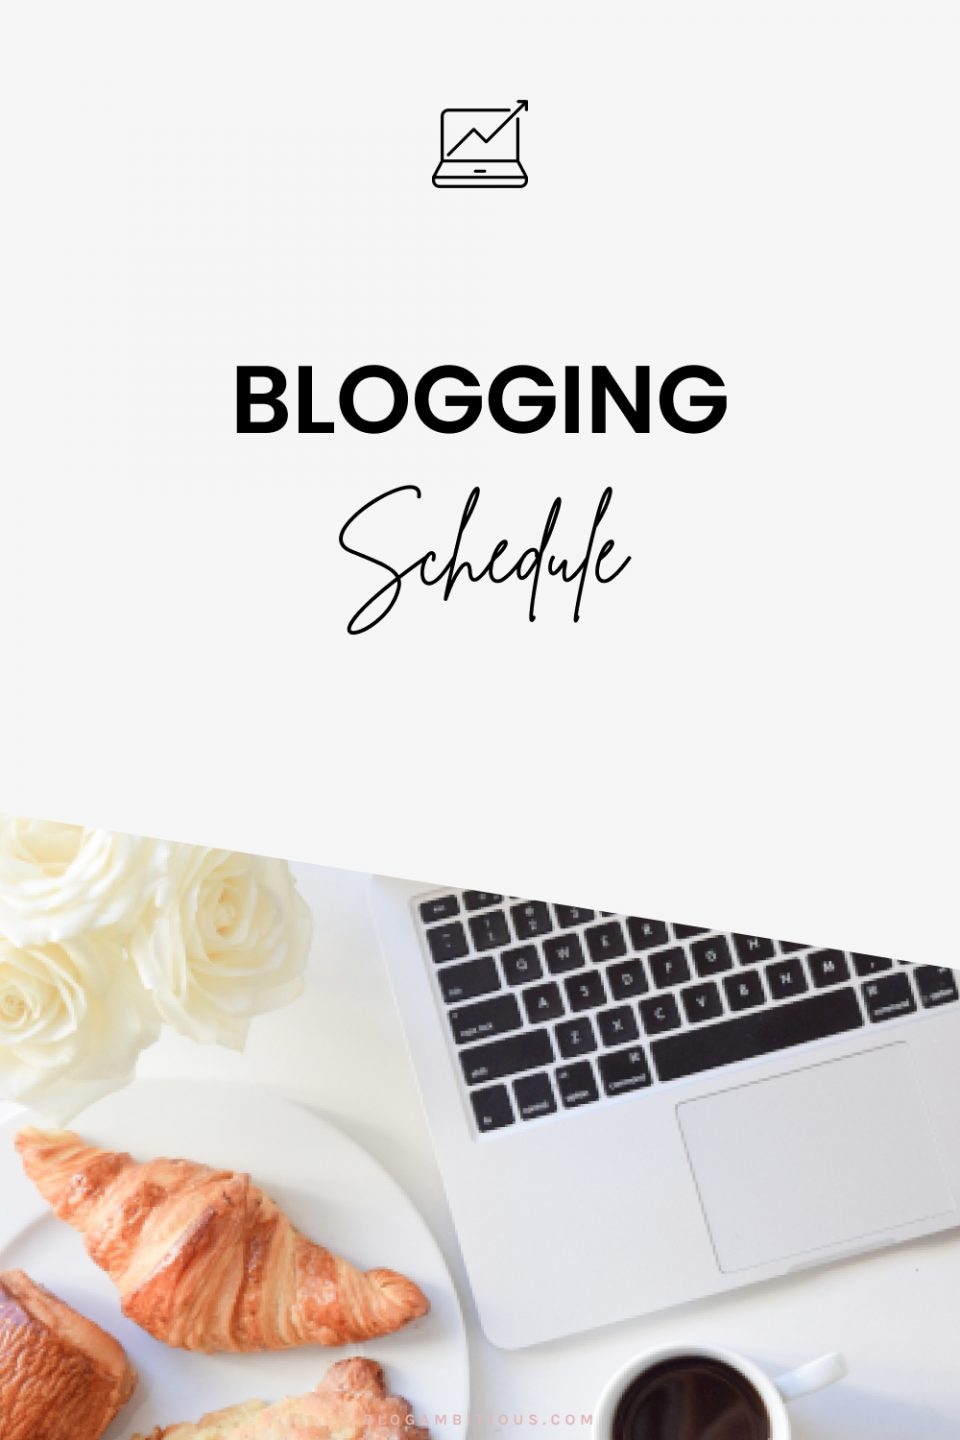 Blogging Schedule